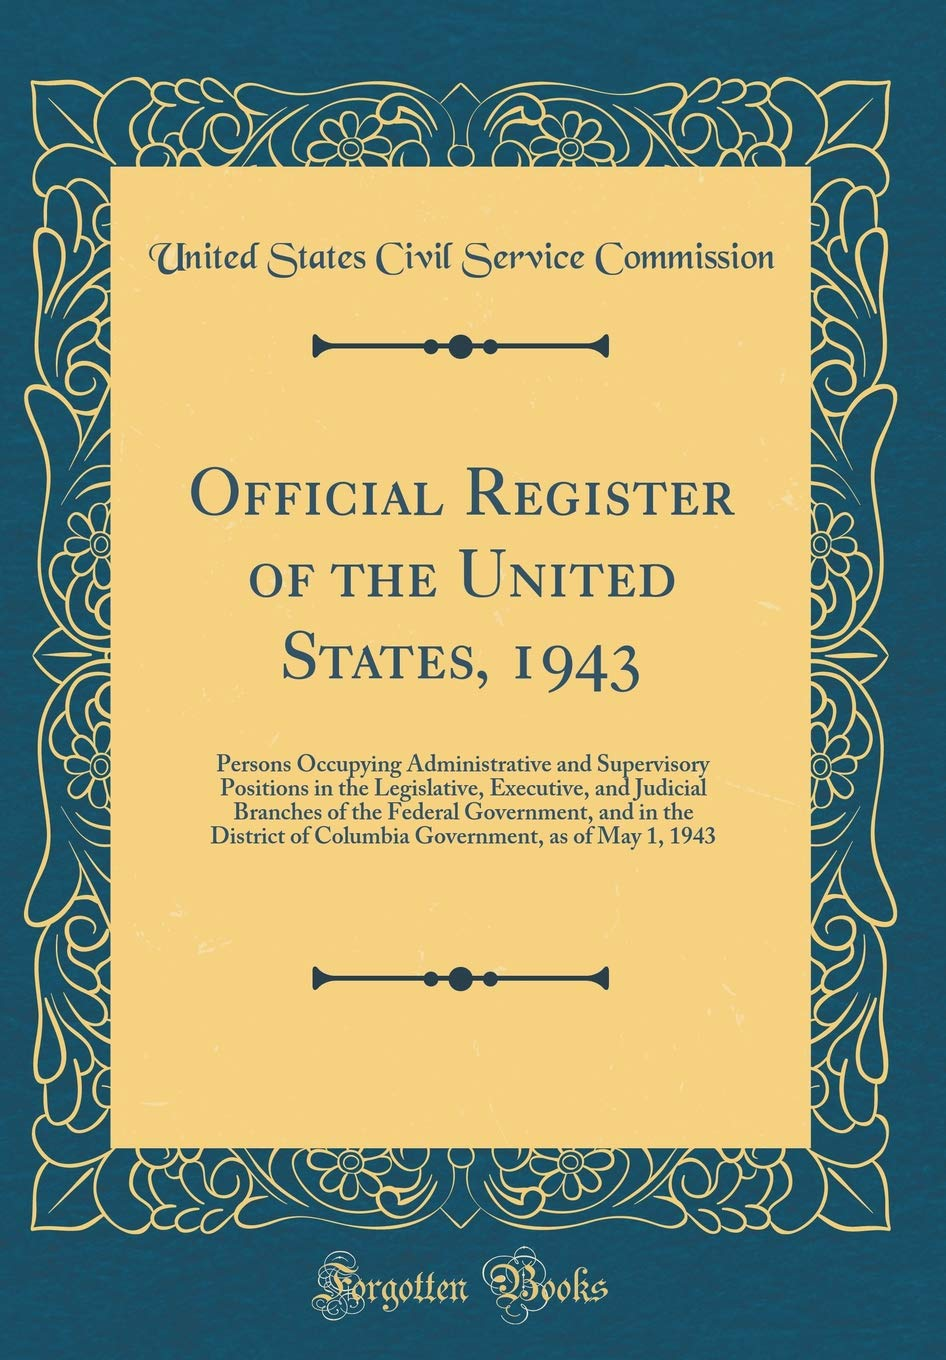 Official Register of the United States, 1943: Persons Occupying Administrative and Supervisory Positions in the Legislative, Executive, and Judicial ... of Columbia Government, as of May 1, 1943 ebook